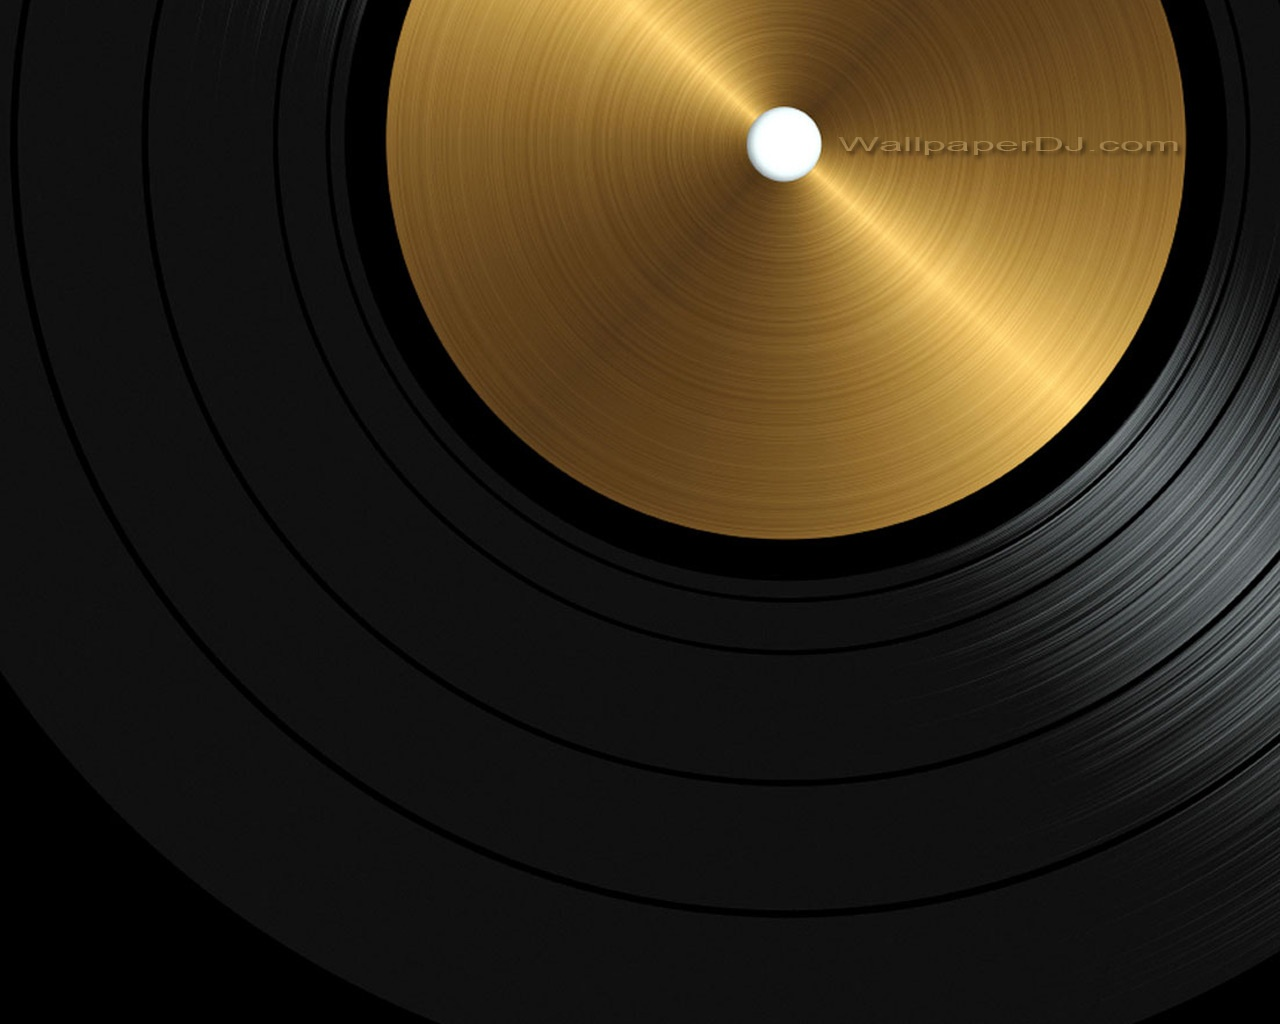 1280x1024 Golden Records Wallpaper Music And Dance Wallpapers